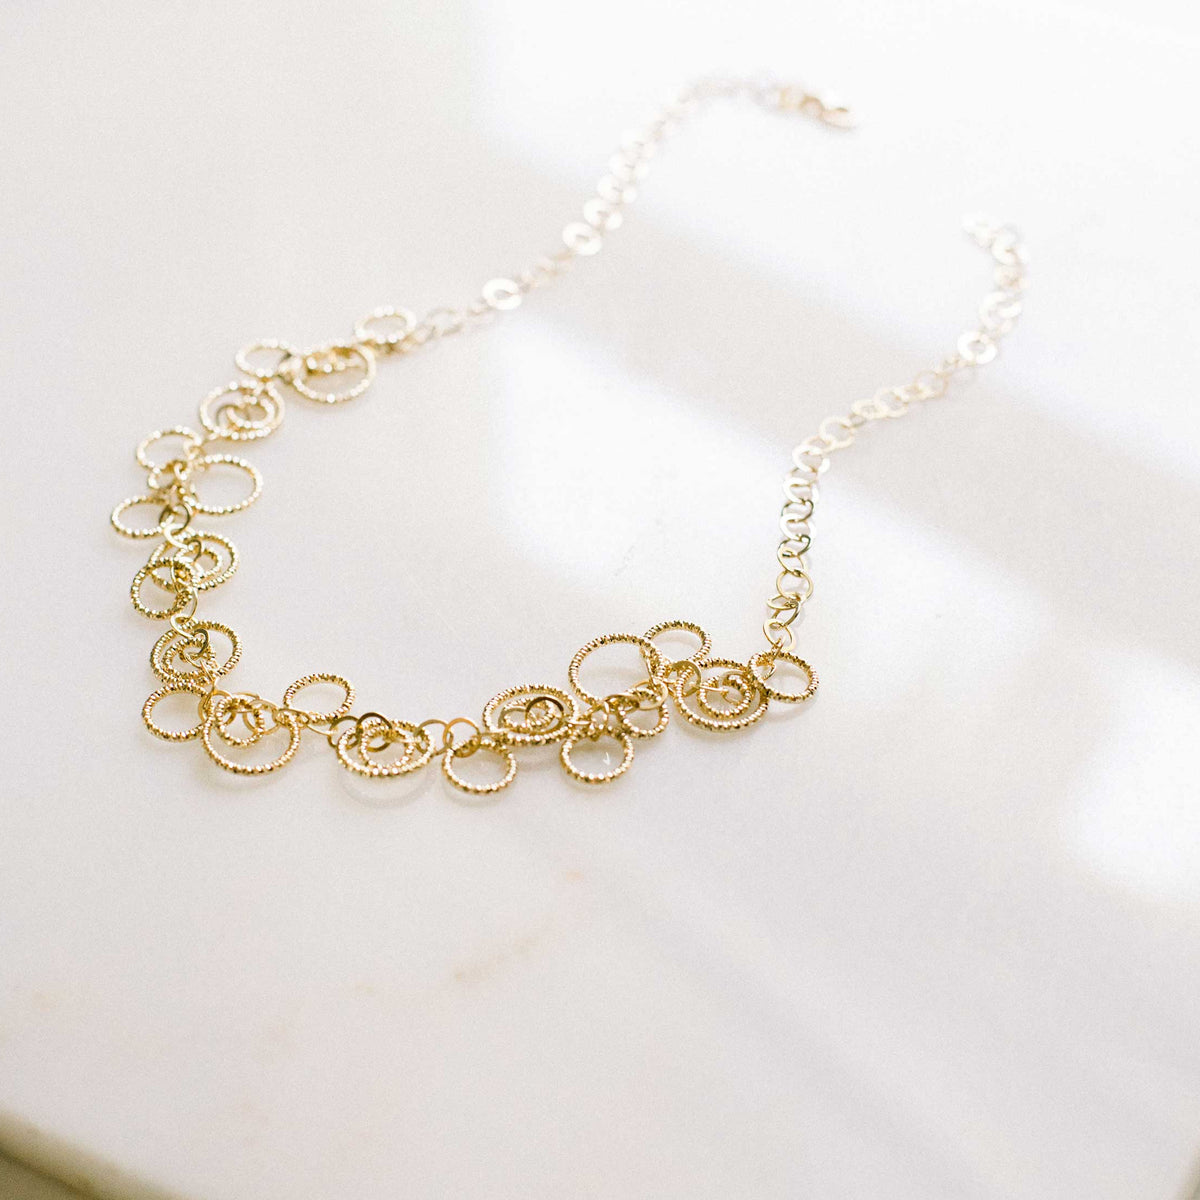 The Circle Chain Link Necklace